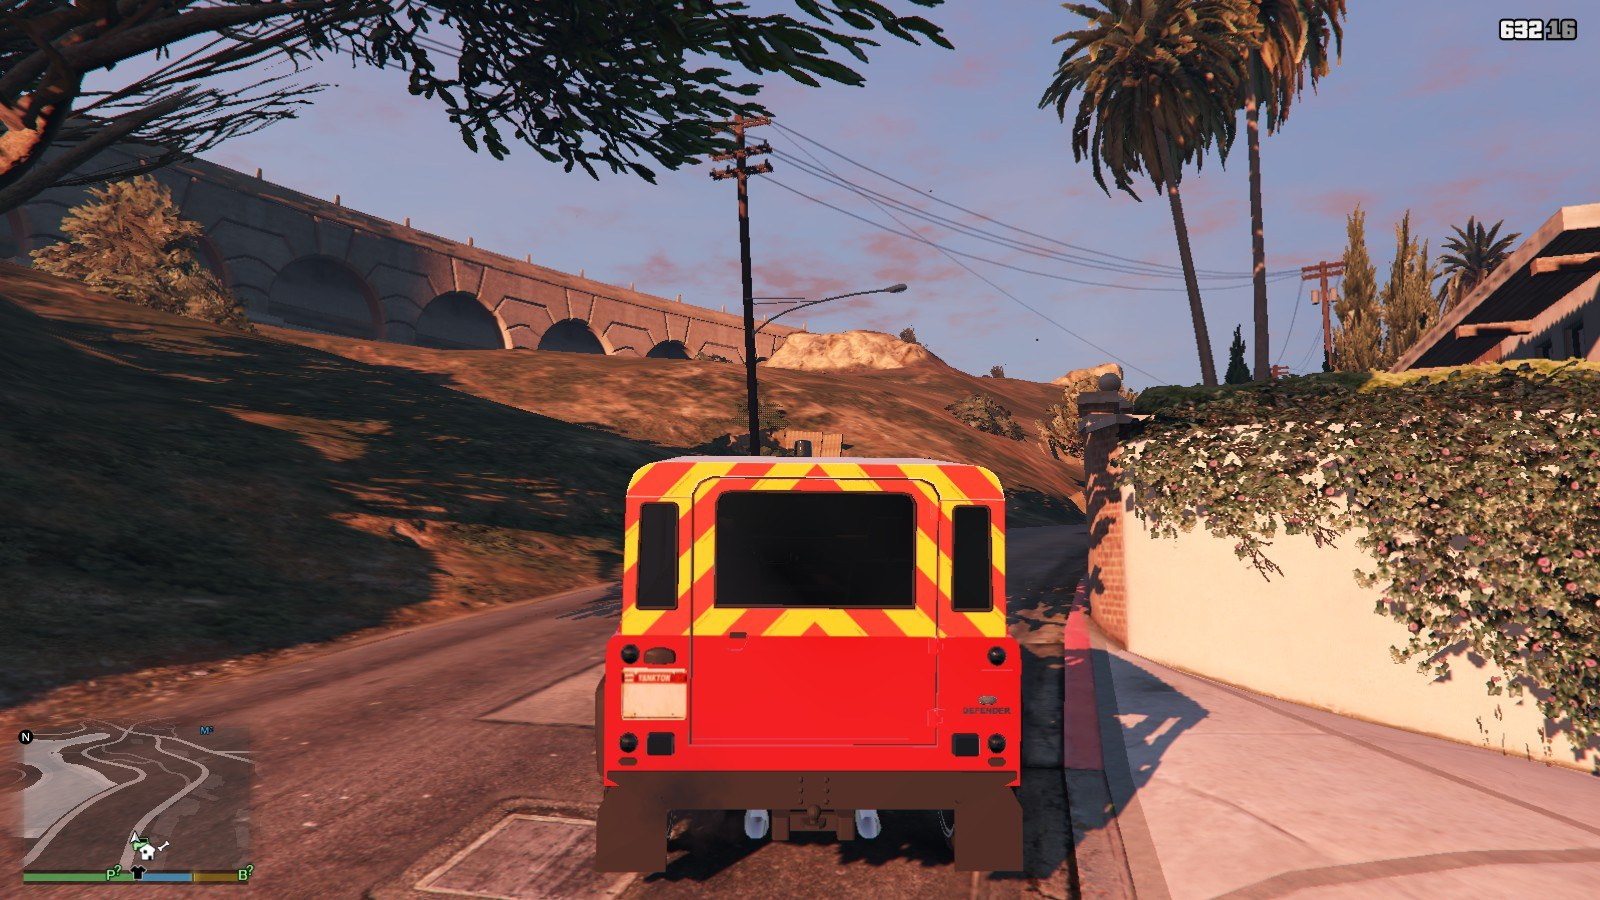 Land Rover Defender GTA5 Mods (3)